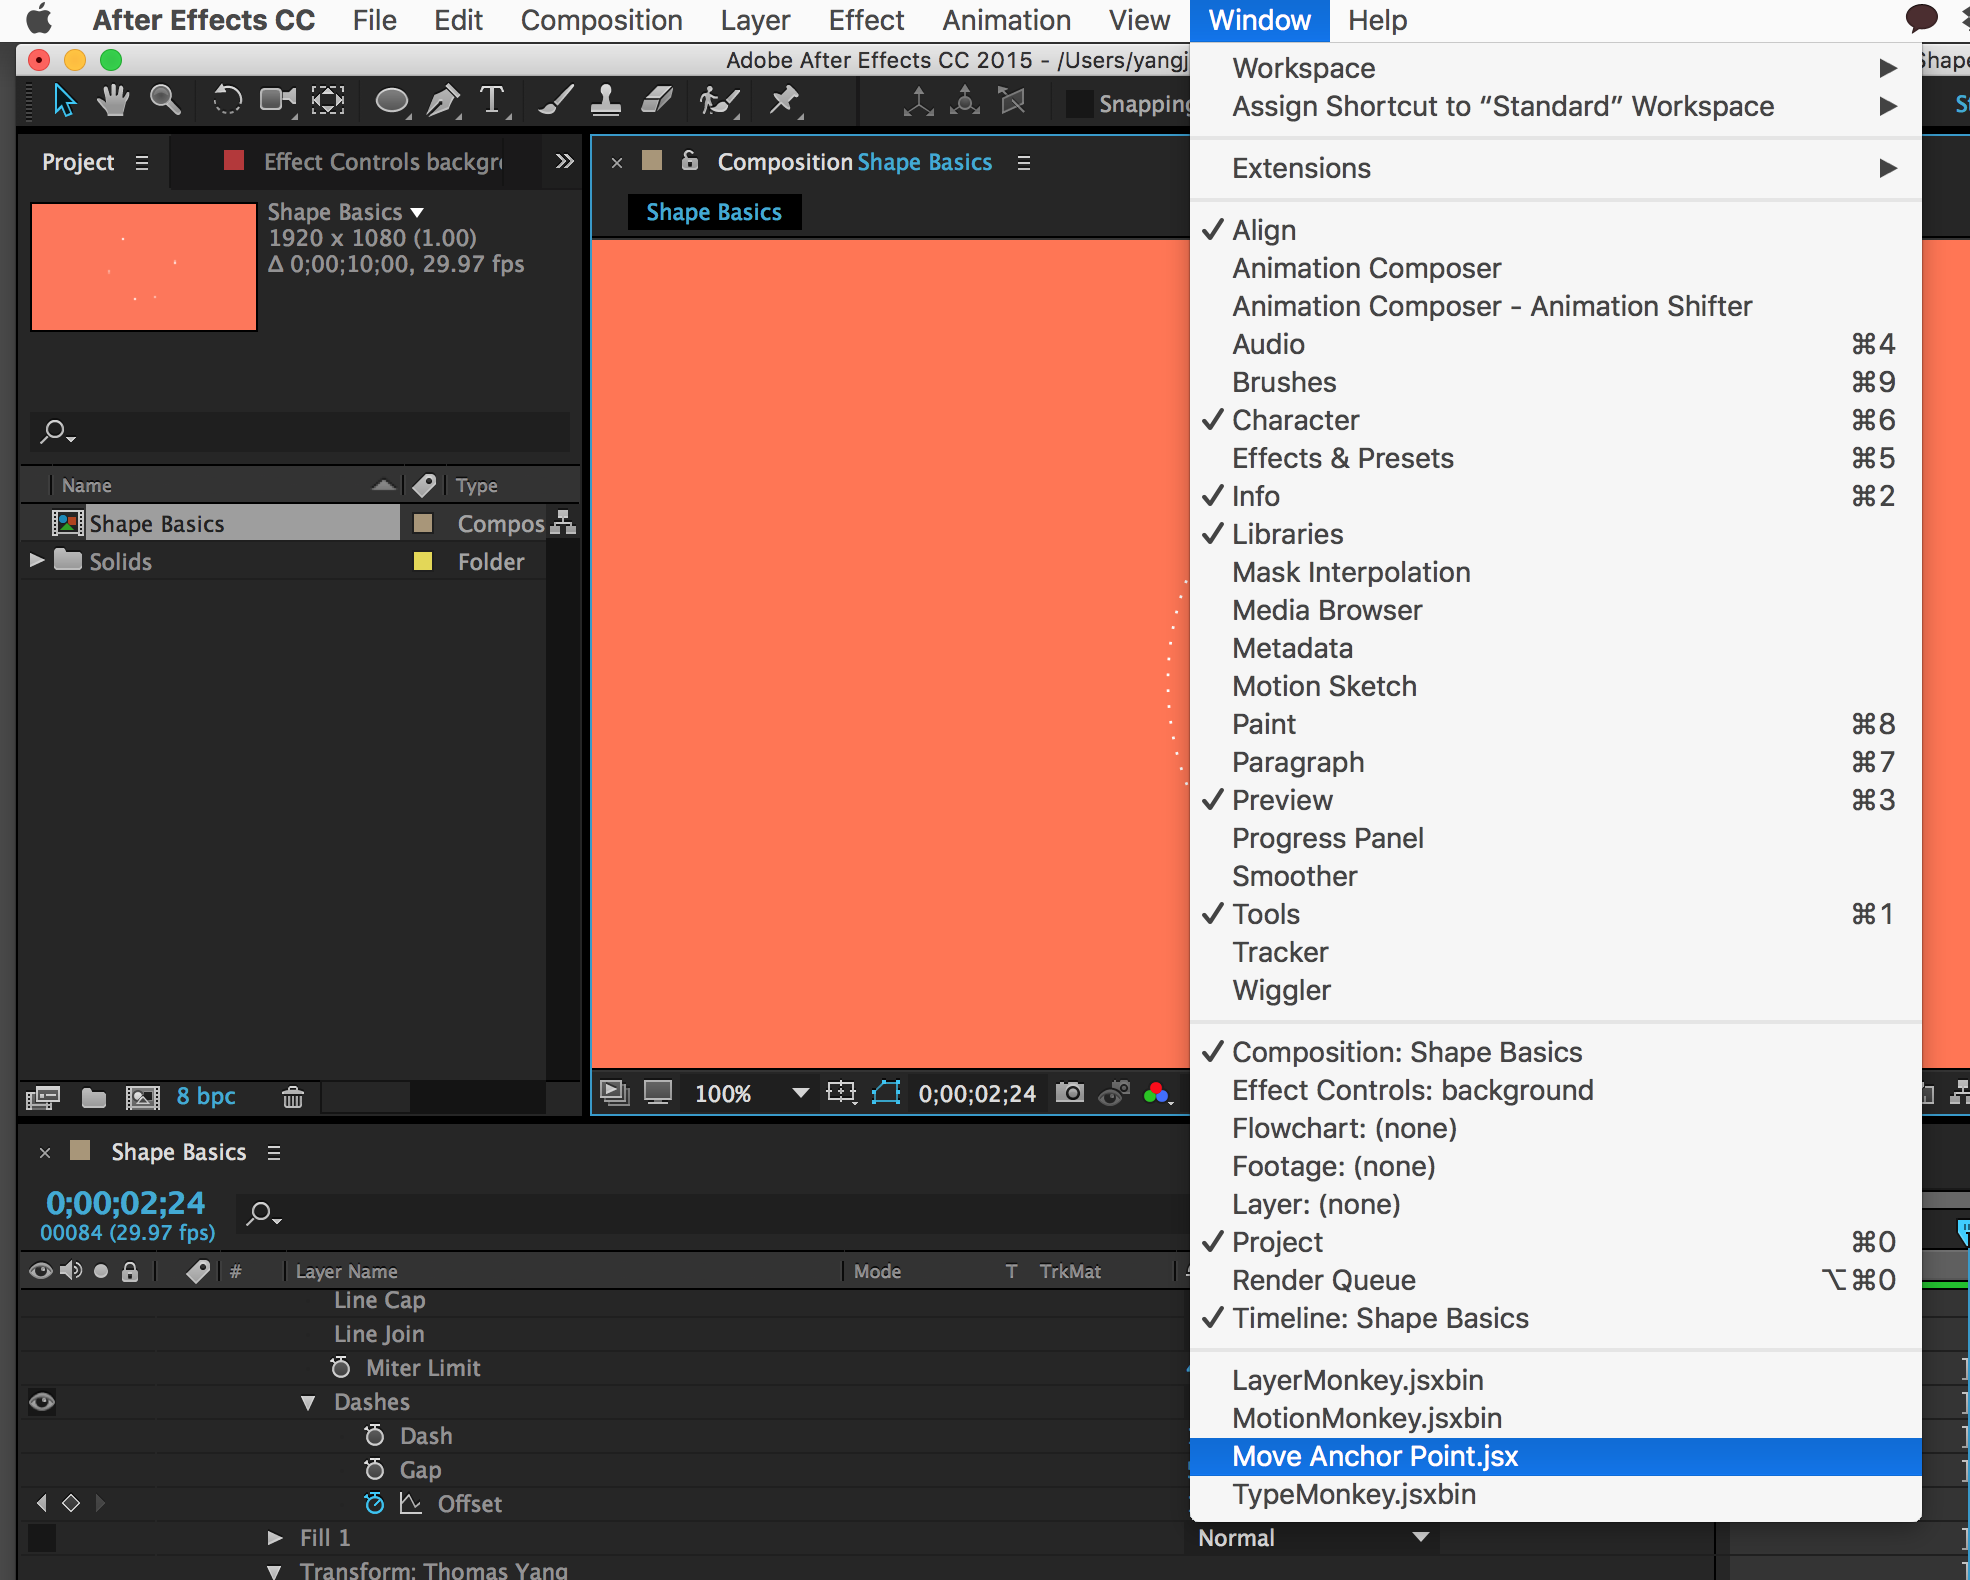 Move Anchor Point has some error in Adobe After Effect CC  - Skillshare